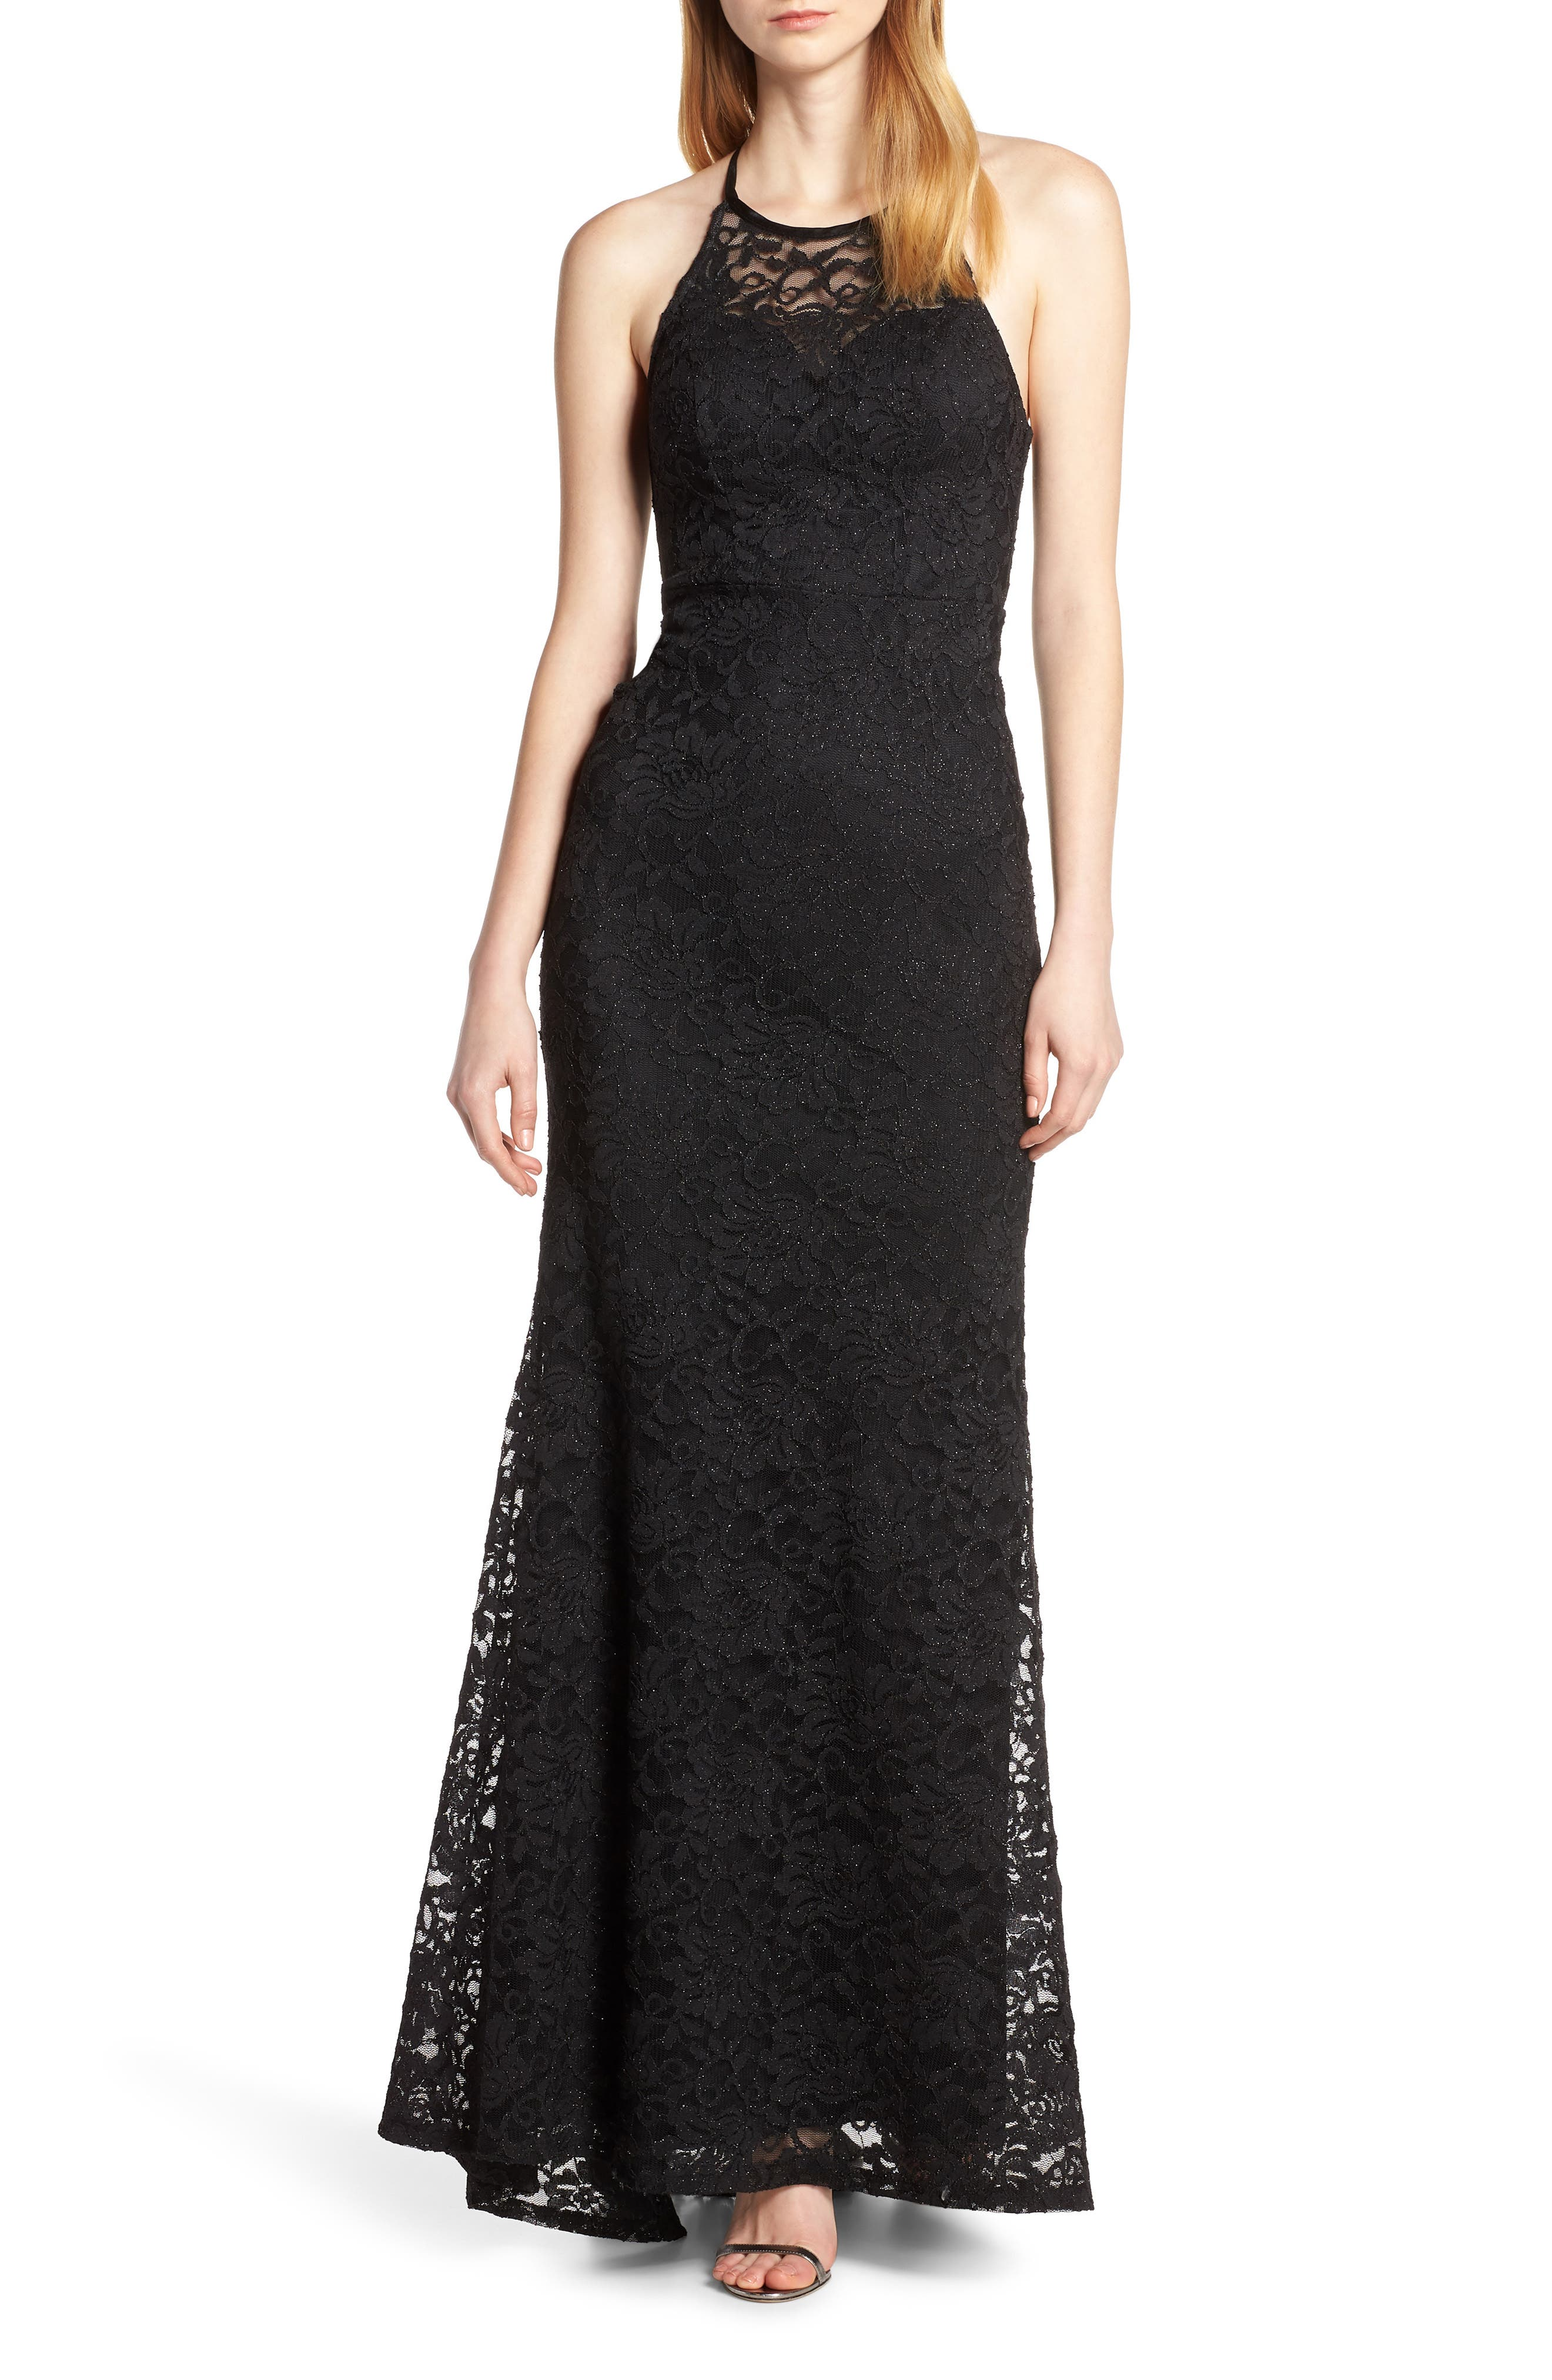 Sequin Hearts Halter Neck Glitter Lace Evening Dress